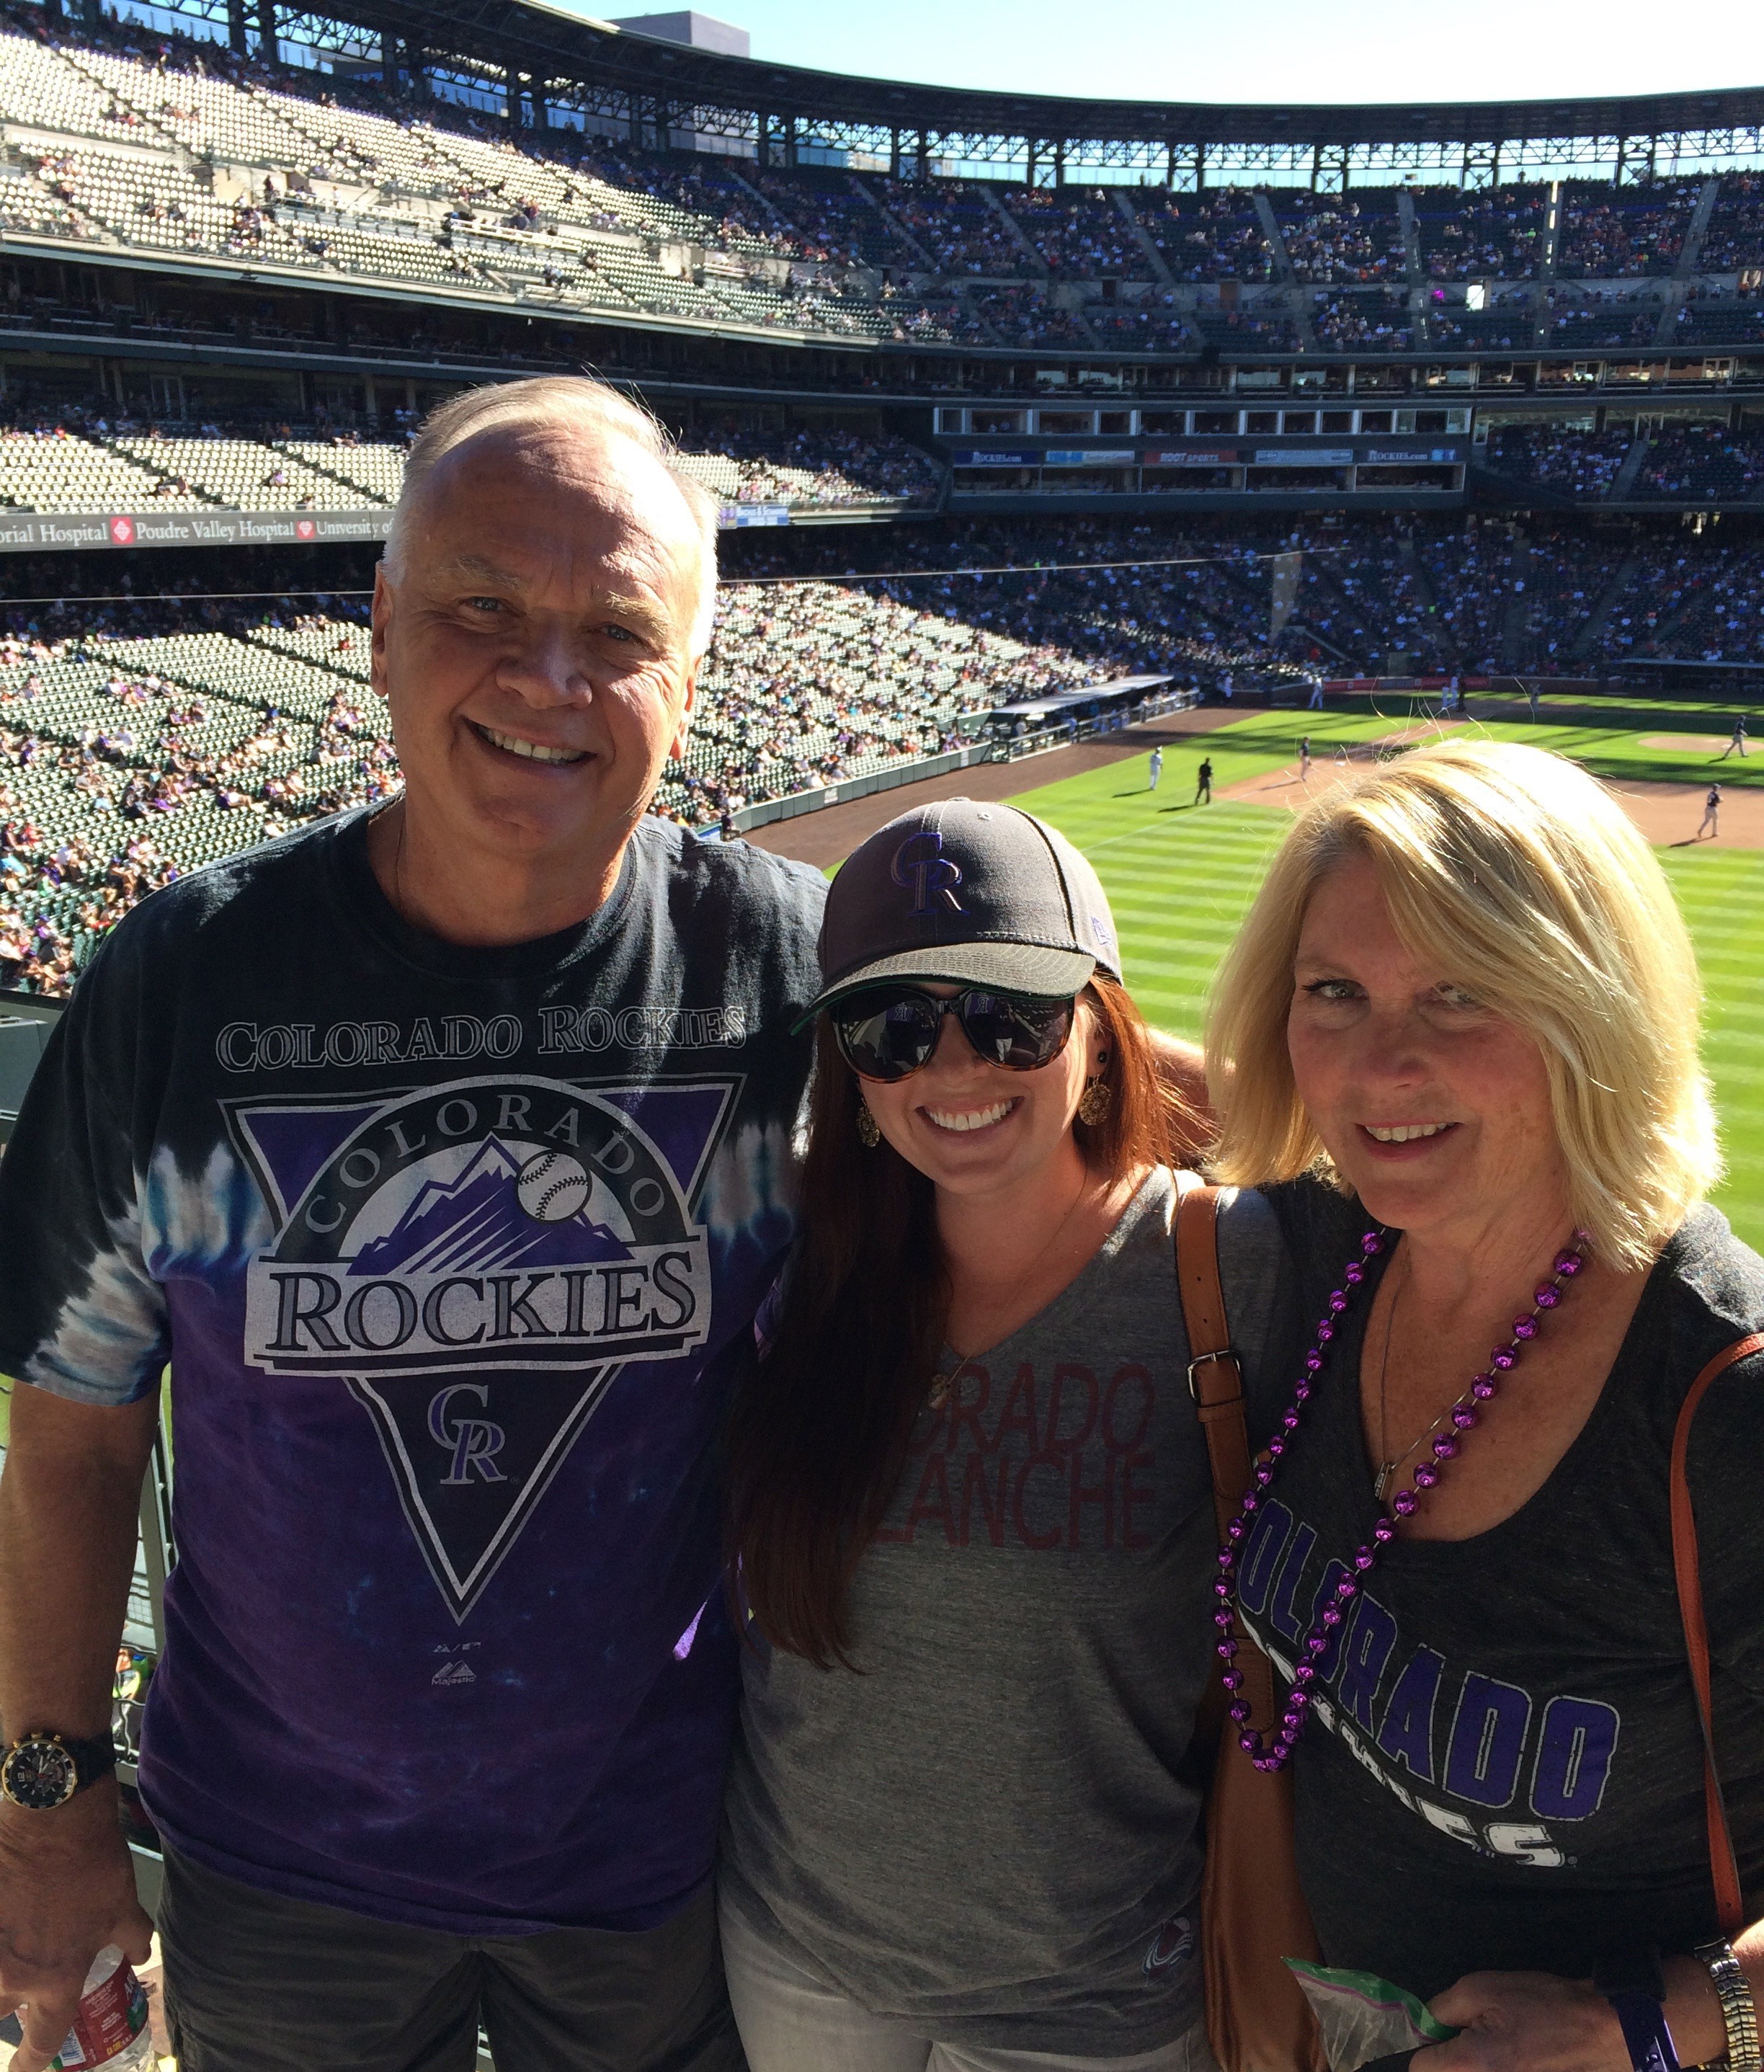 Rockies game with my Family